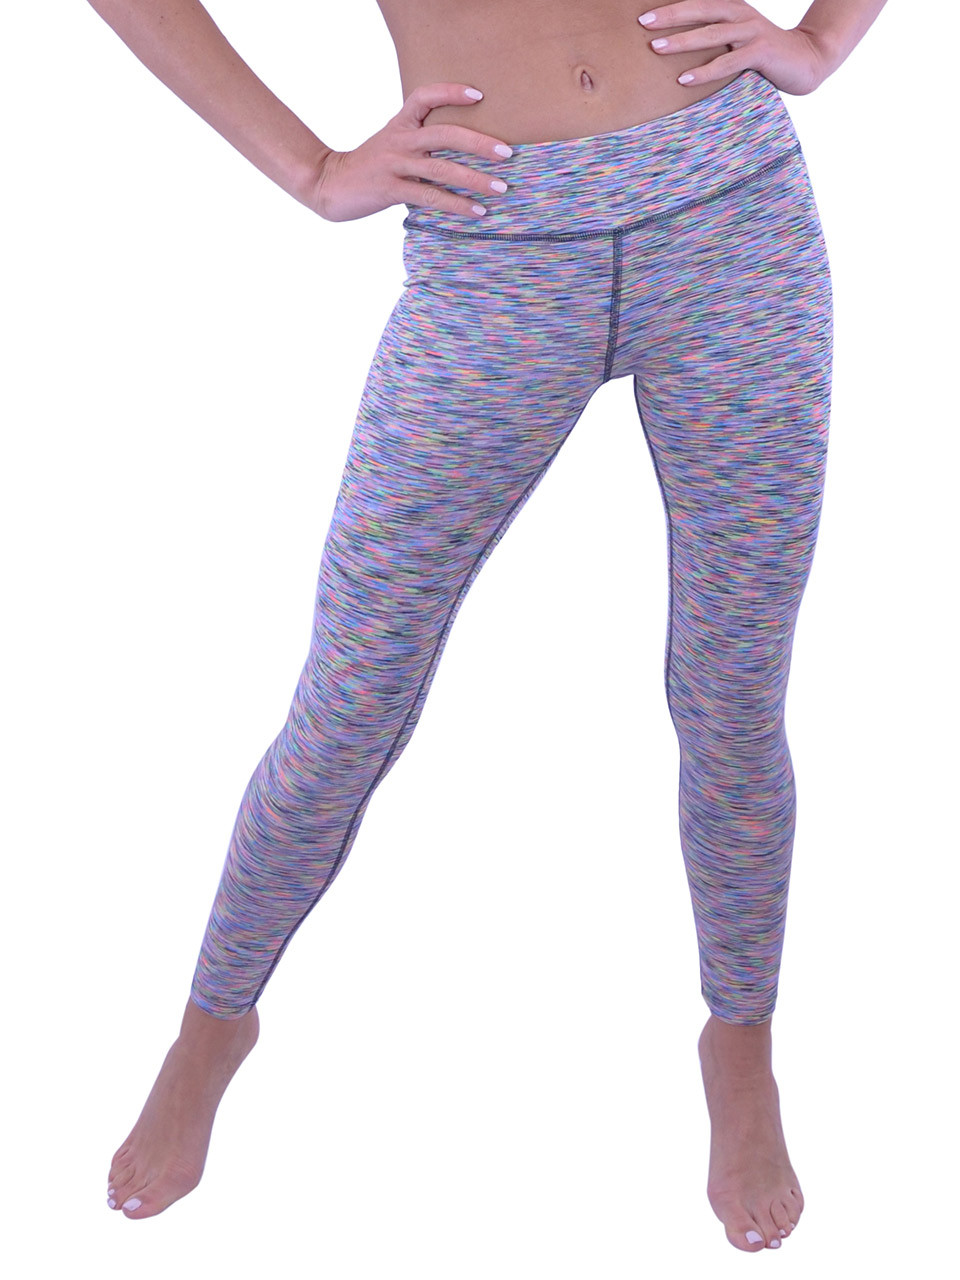 a90277b6bfe VF-Sport Fitness Yoga Athletic Tights - Dri-FIT, (Tall, Misses and Plus  Sizes)